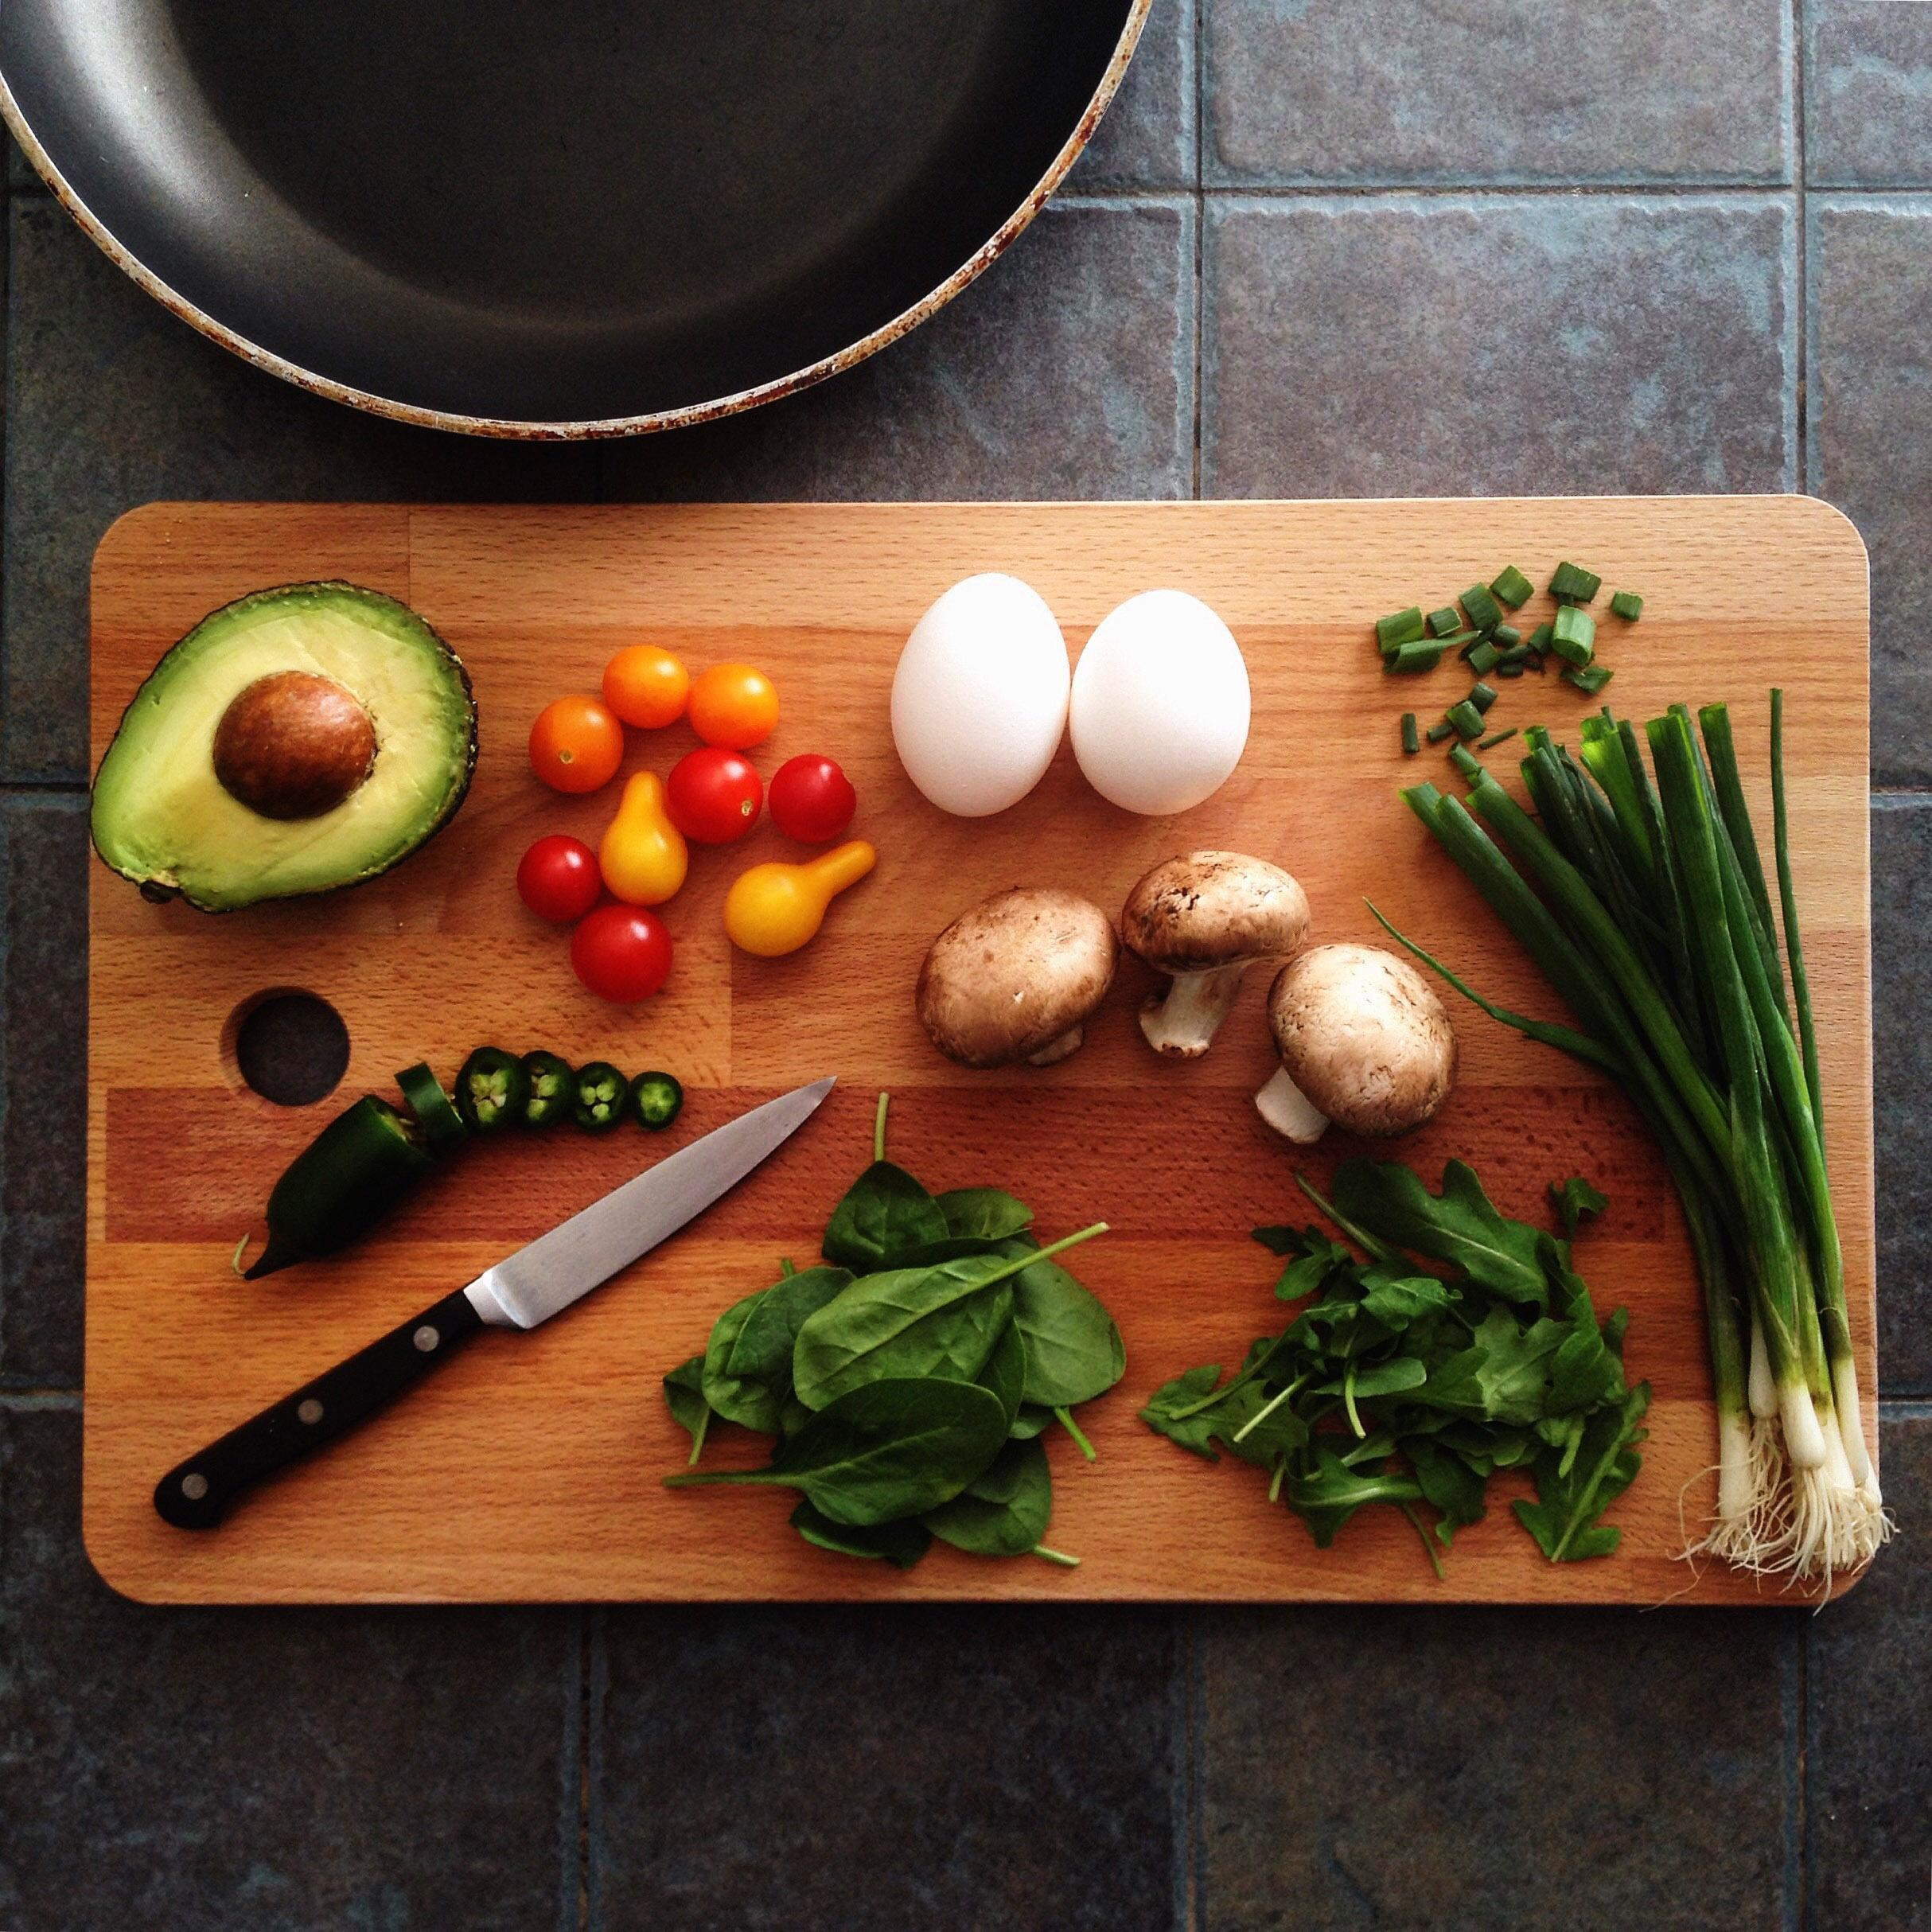 Cooking hacks for kitchen novices